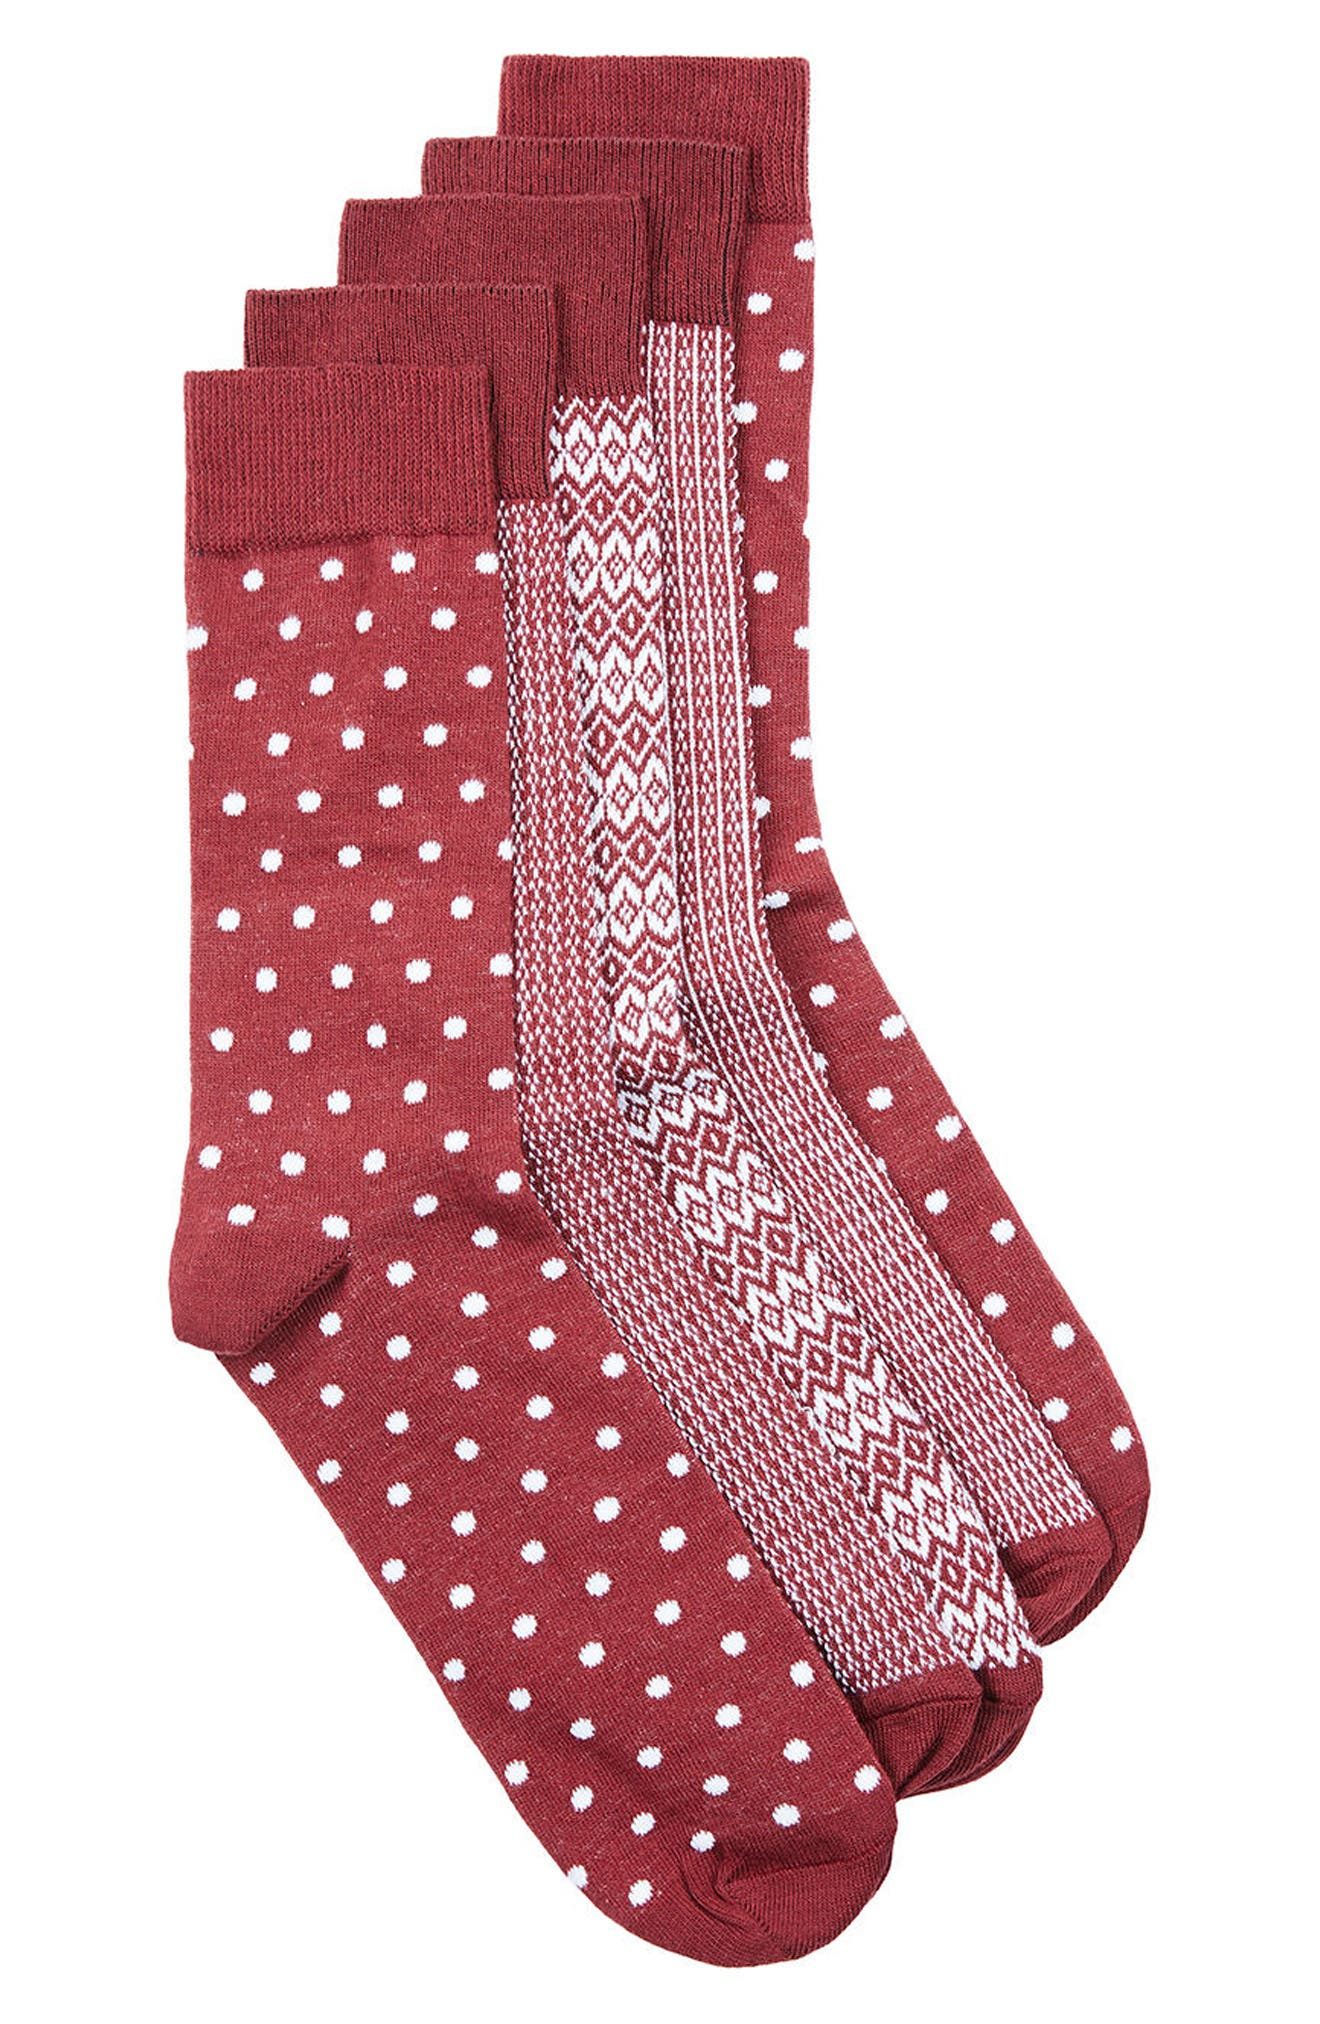 Topman Mixed Pattern 5-Pack Socks